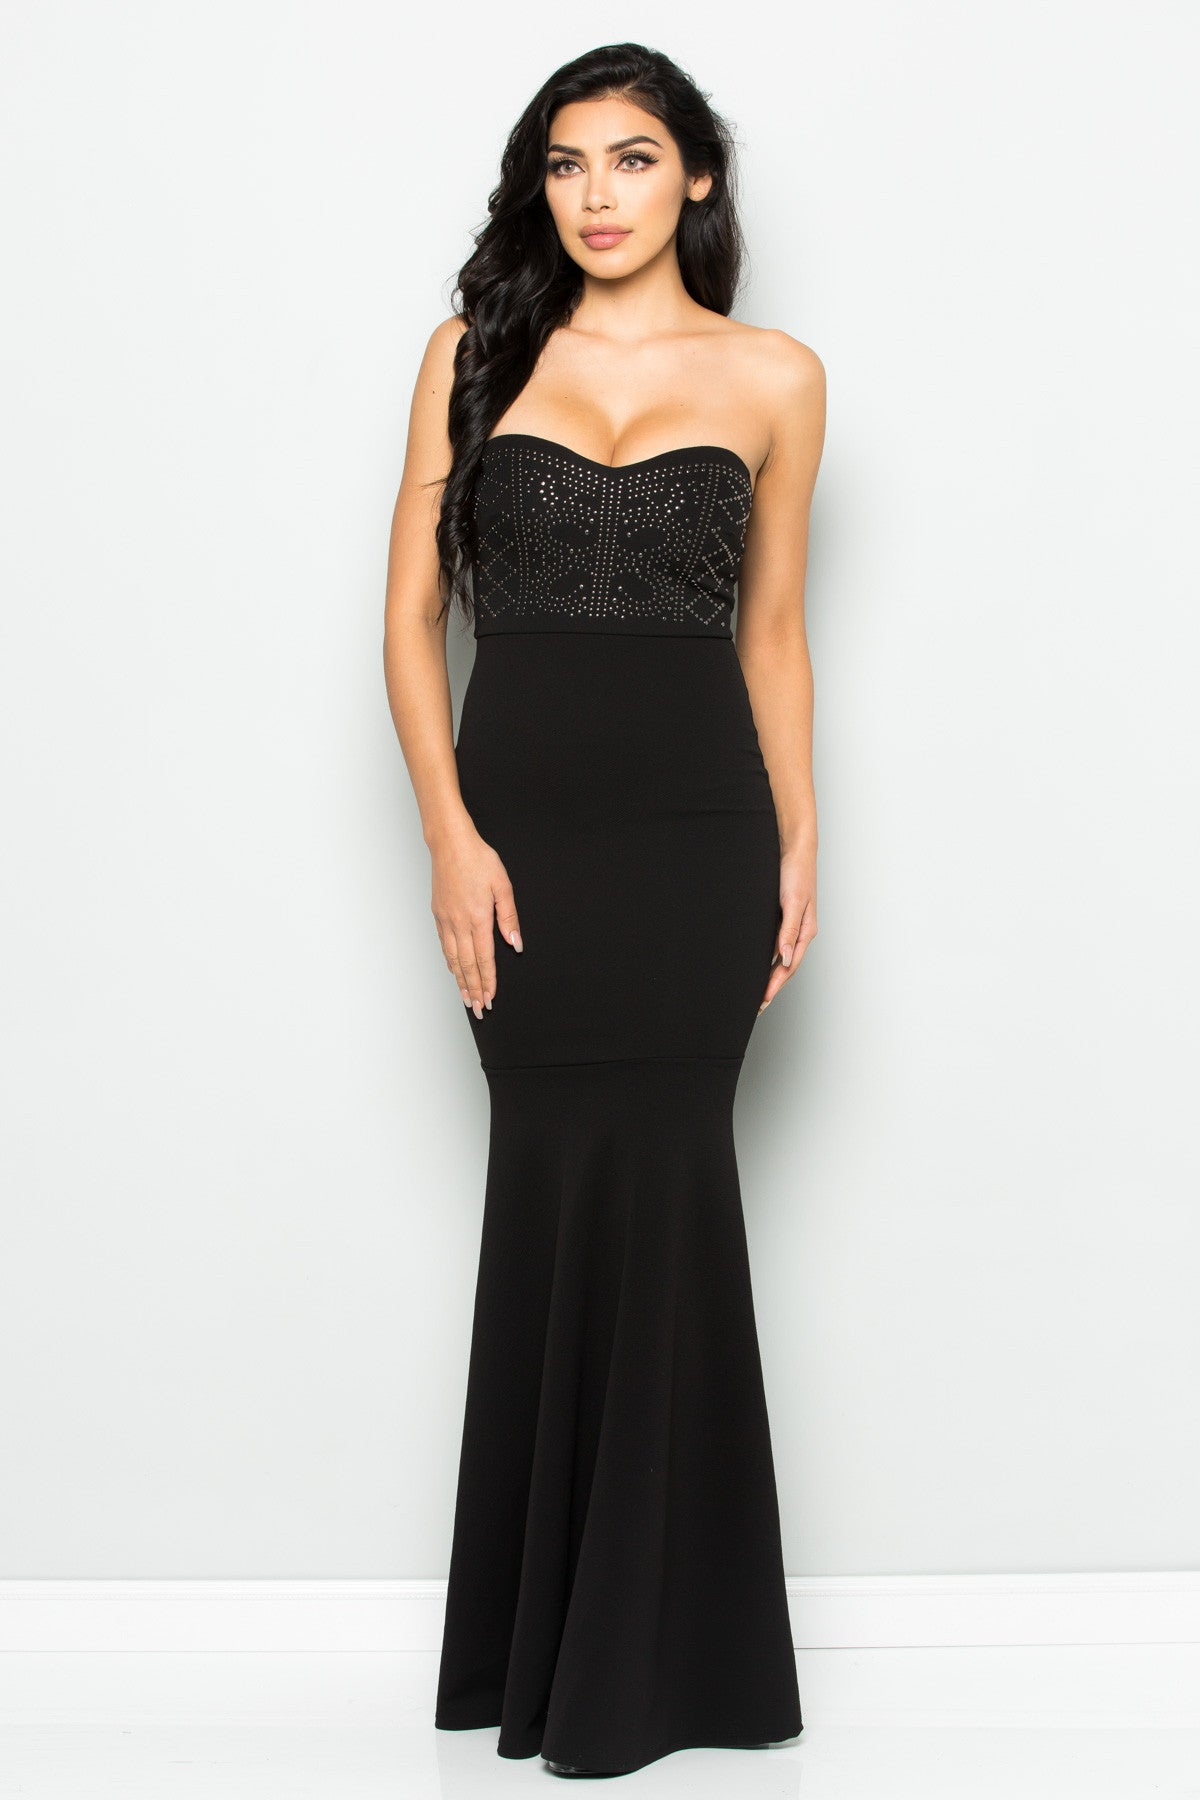 Beaded Sweetheart Mermaid Tail Gown in Black - Dresses - My Yuccie - 5